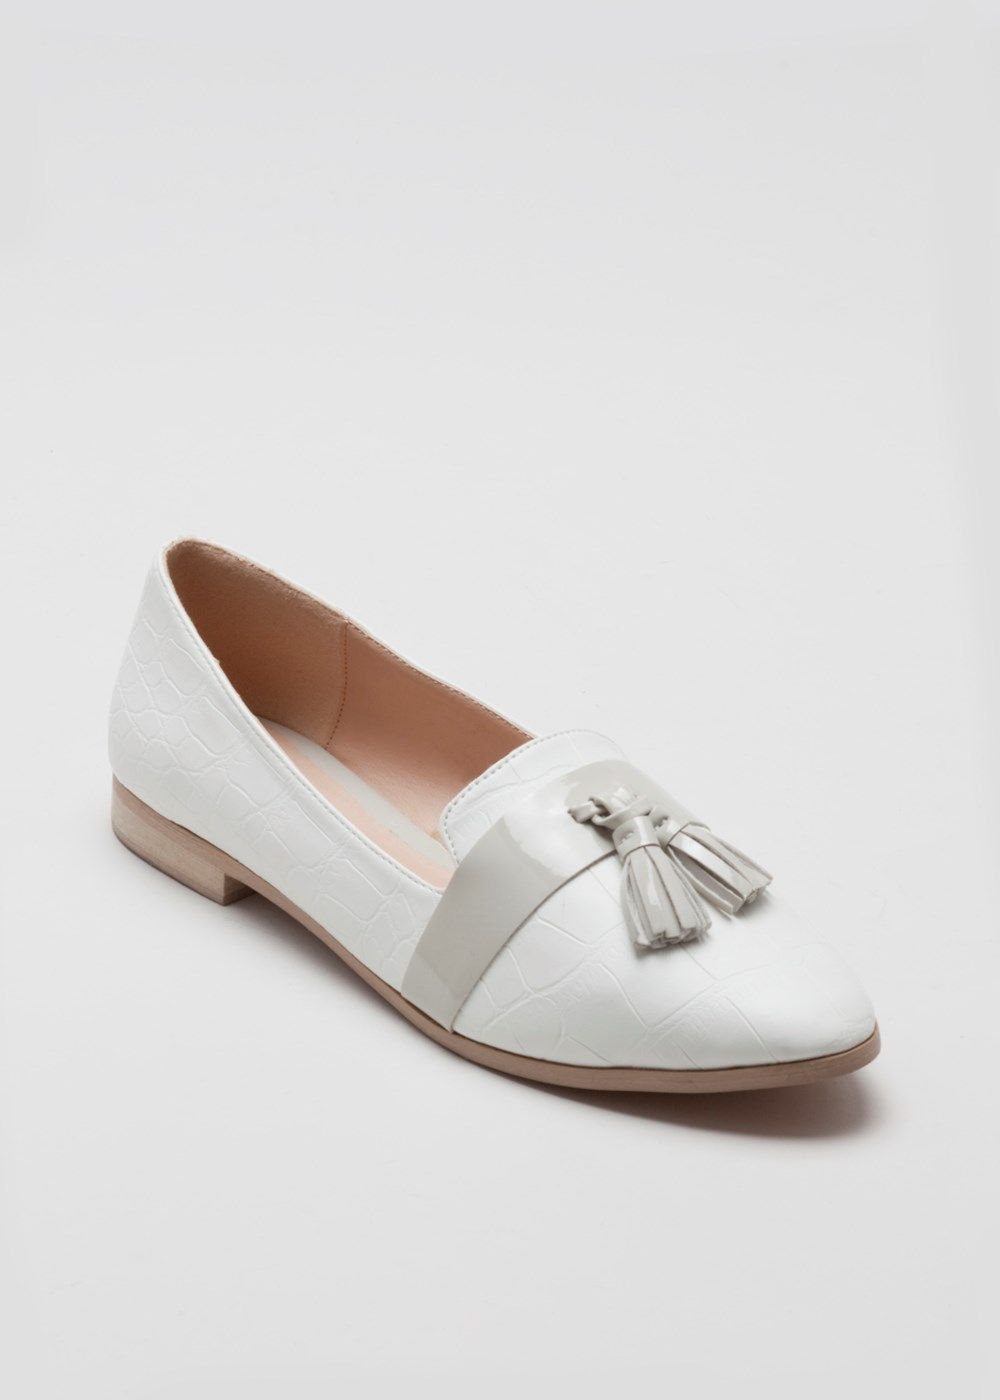 Waiting for these in store  http://www.matalan.co.uk/womens/highlights/show-me-everything/s2596525/tassel-loafer-shoe